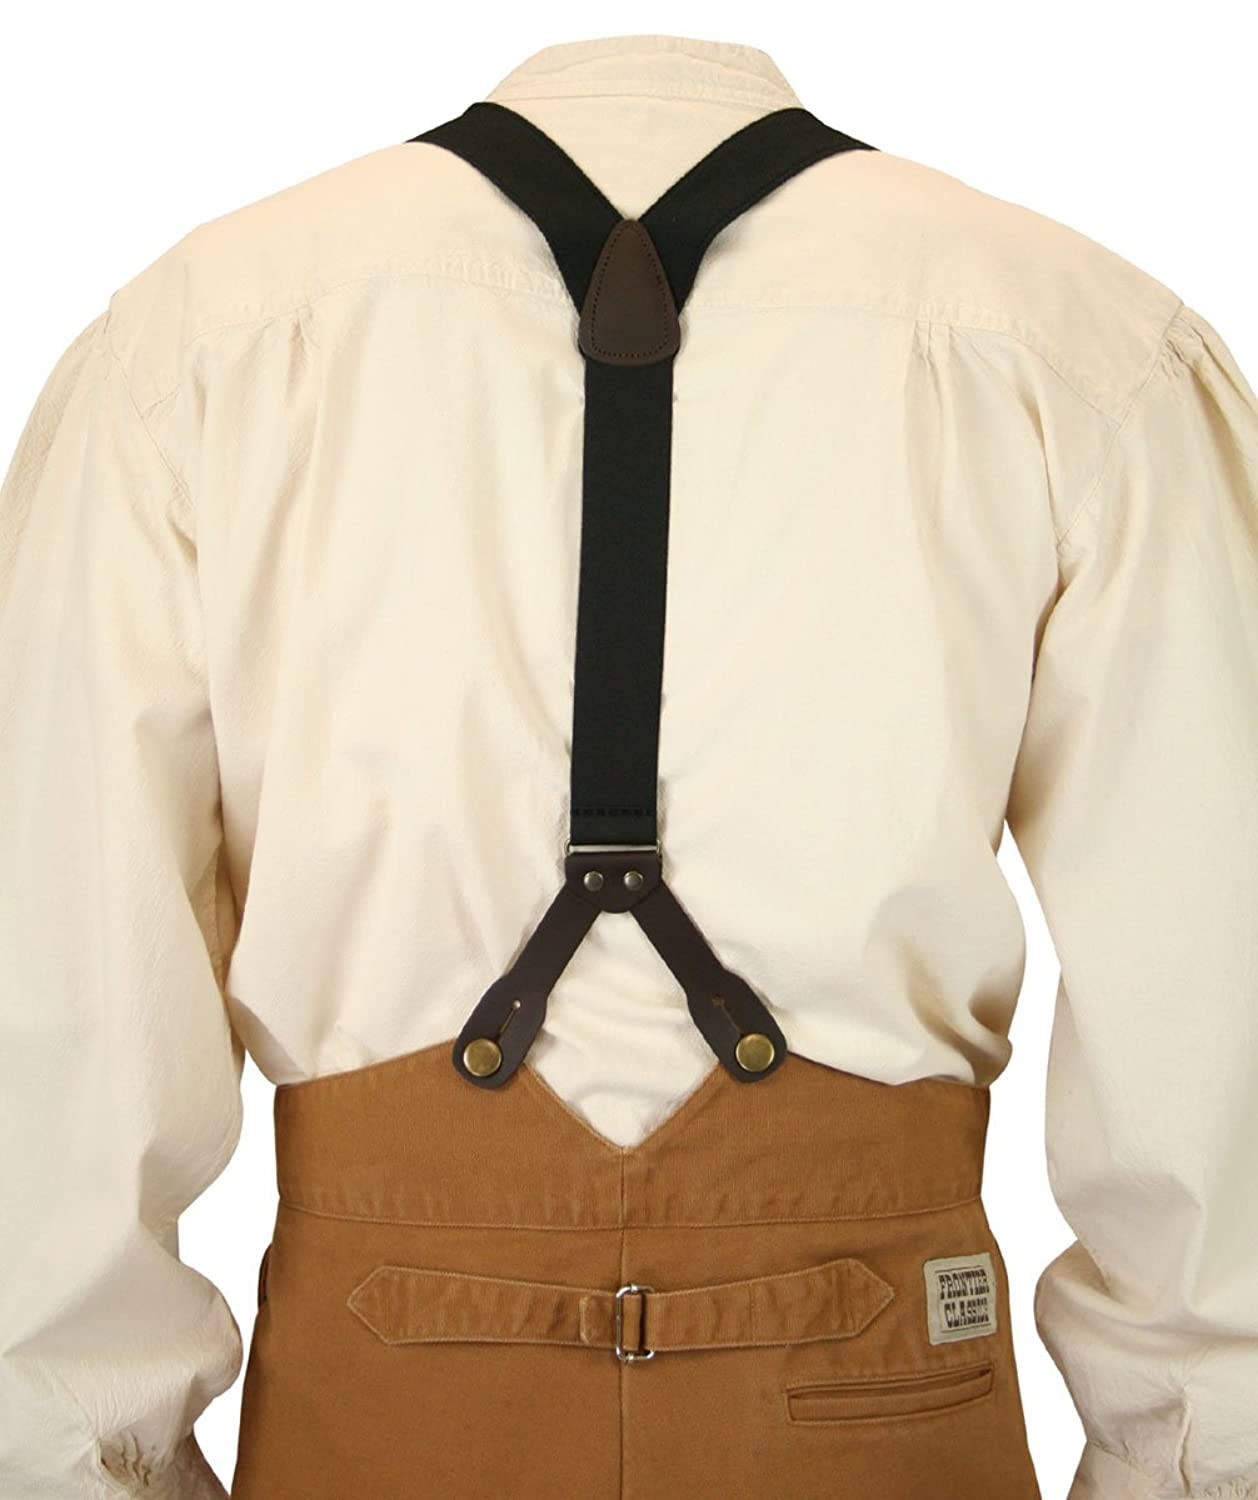 Edwardian Men's Pants Historical Emporium Mens Canvas Stagecoach Y-Back Suspenders $27.95 AT vintagedancer.com